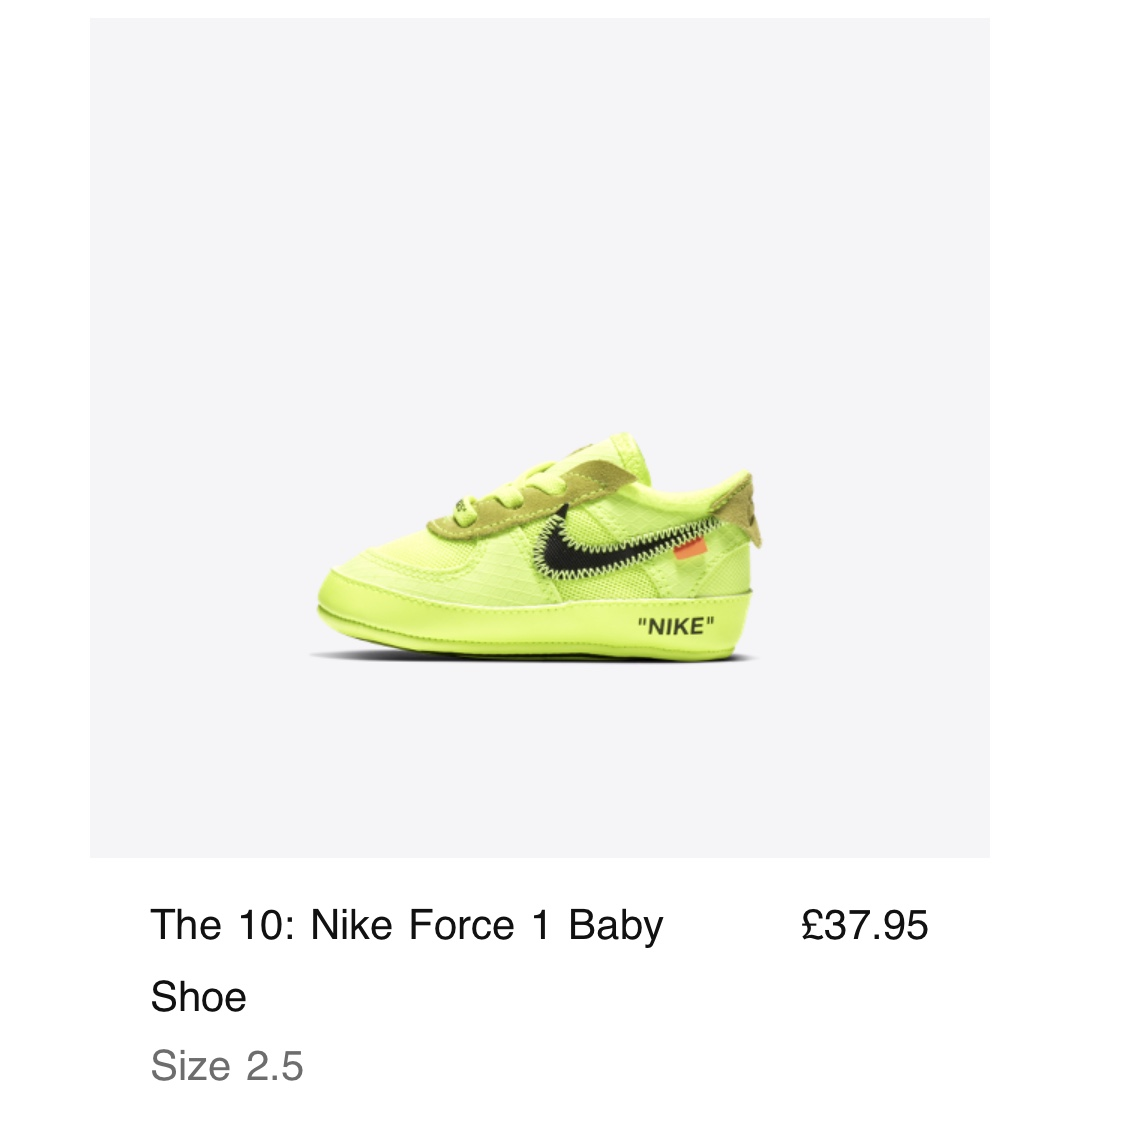 Nike Air Force 1 x Off White Baby Volt Baby size Depop